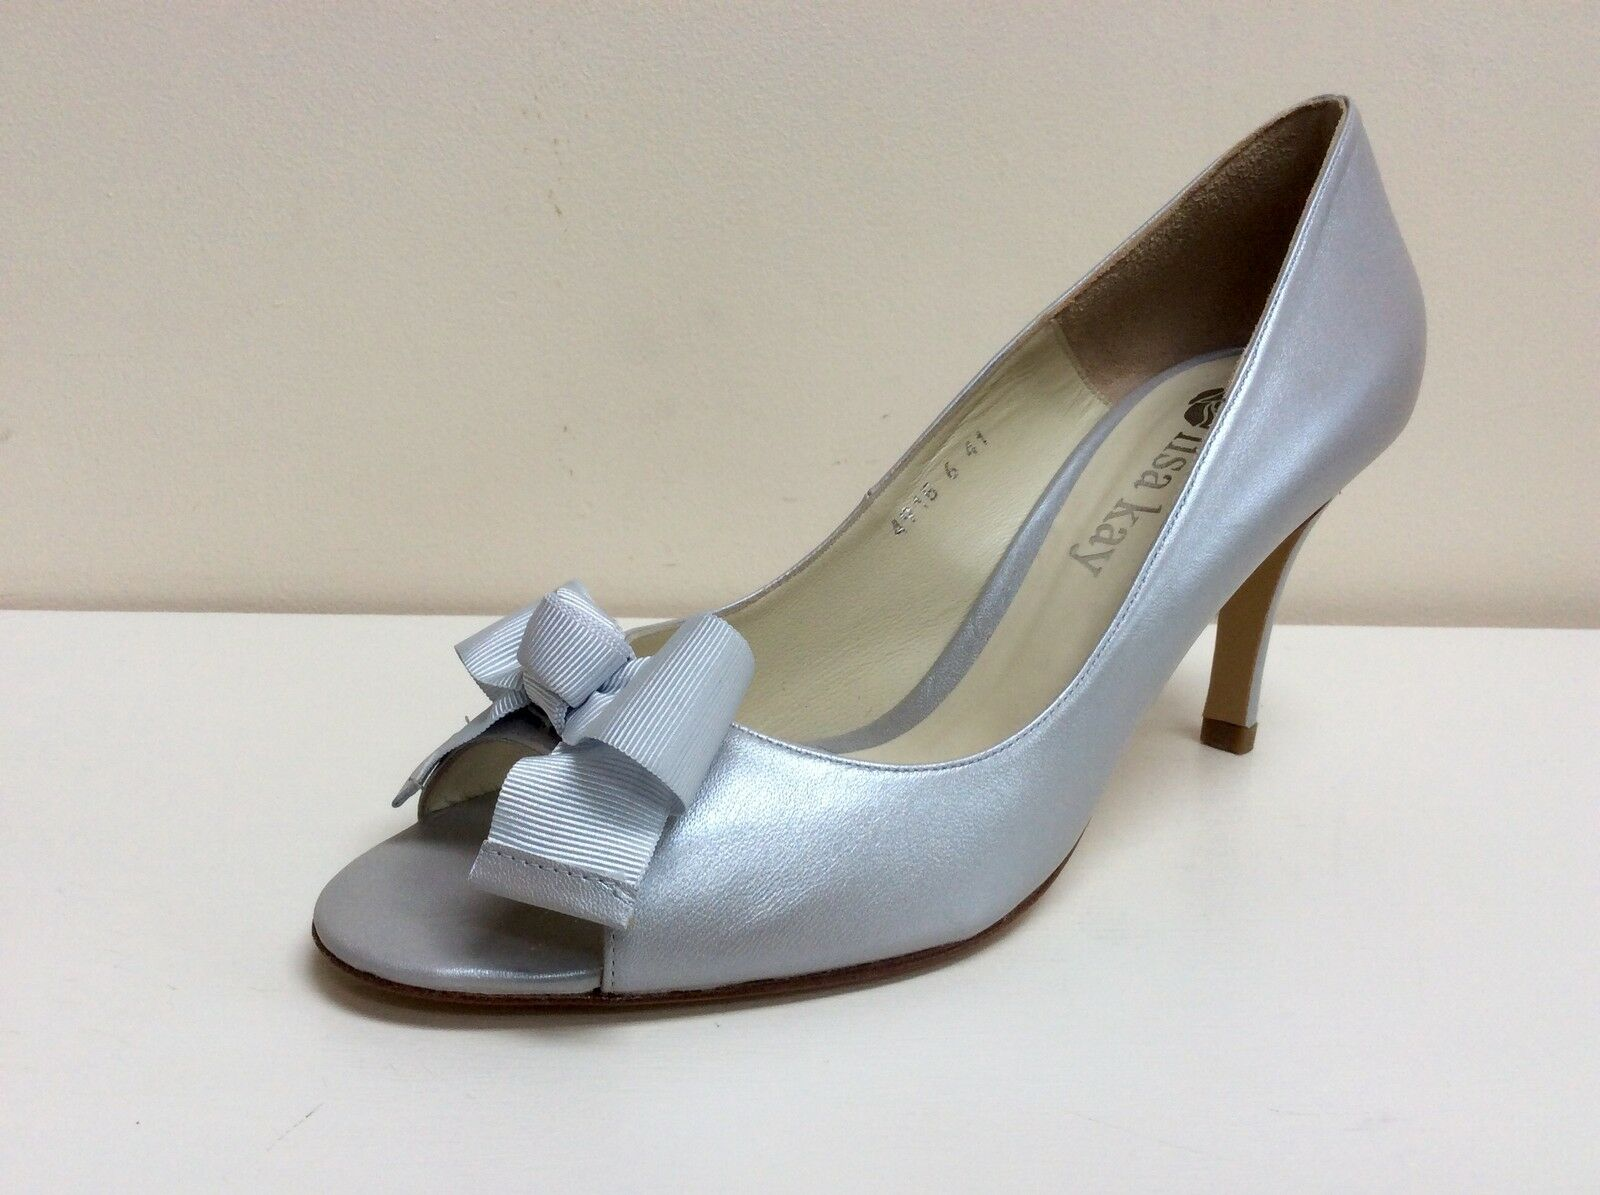 Lisa Kay Marcia courts, silver leather peep toe courts, Marcia UK 4.5/EU 37.5, BNWB decc5b